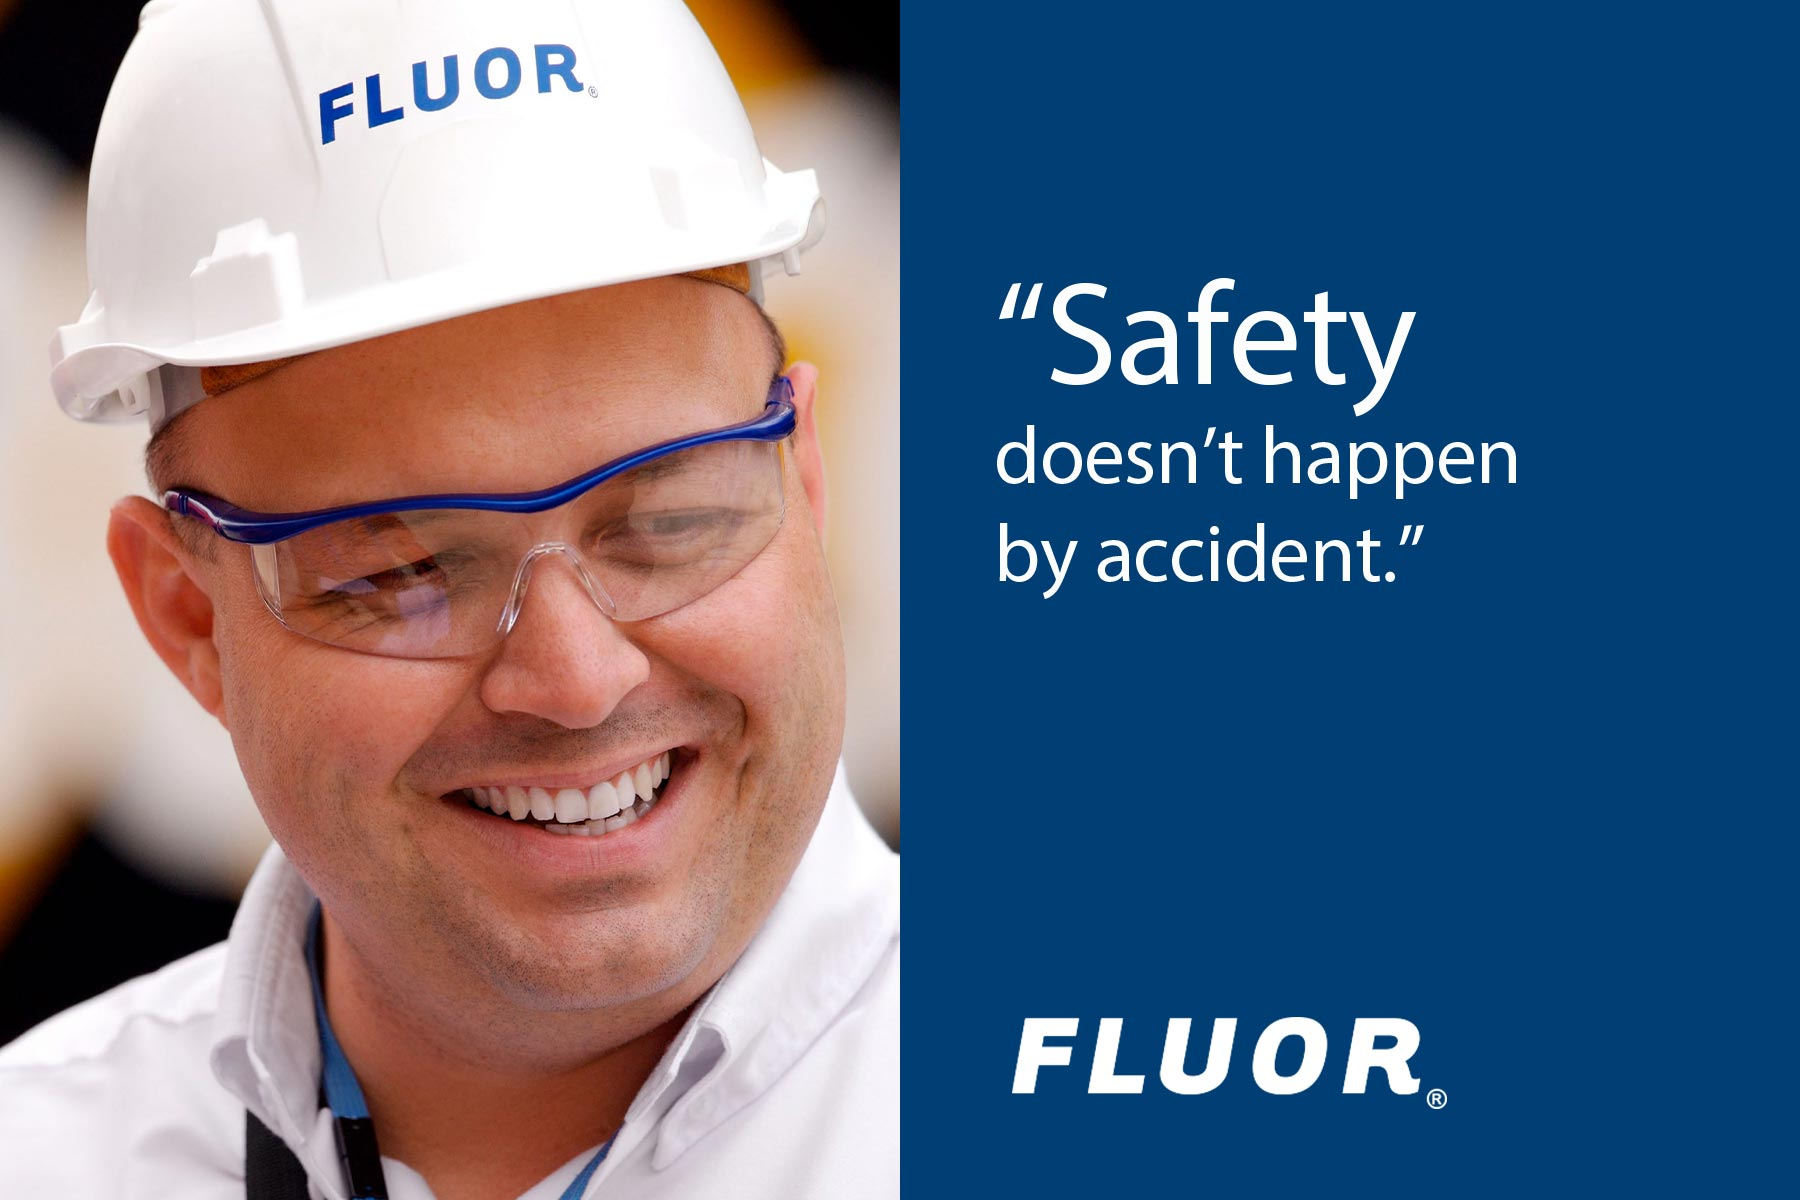 Fluor - Construction Company Logo on a Safety Ad